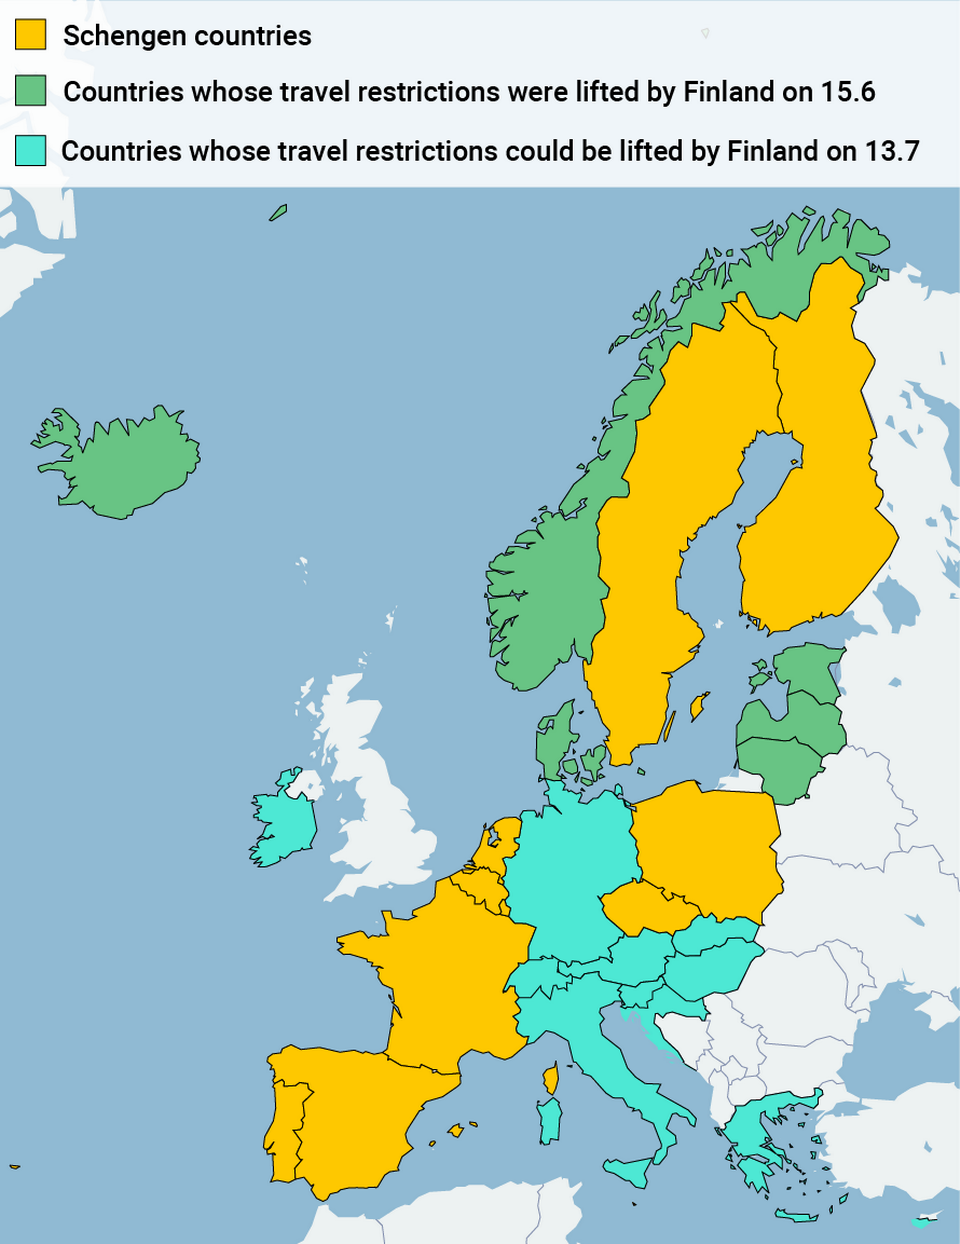 Finland To Loosen Travel Restrictions Based On Infection Ratios Yle Uutiset Yle Fi